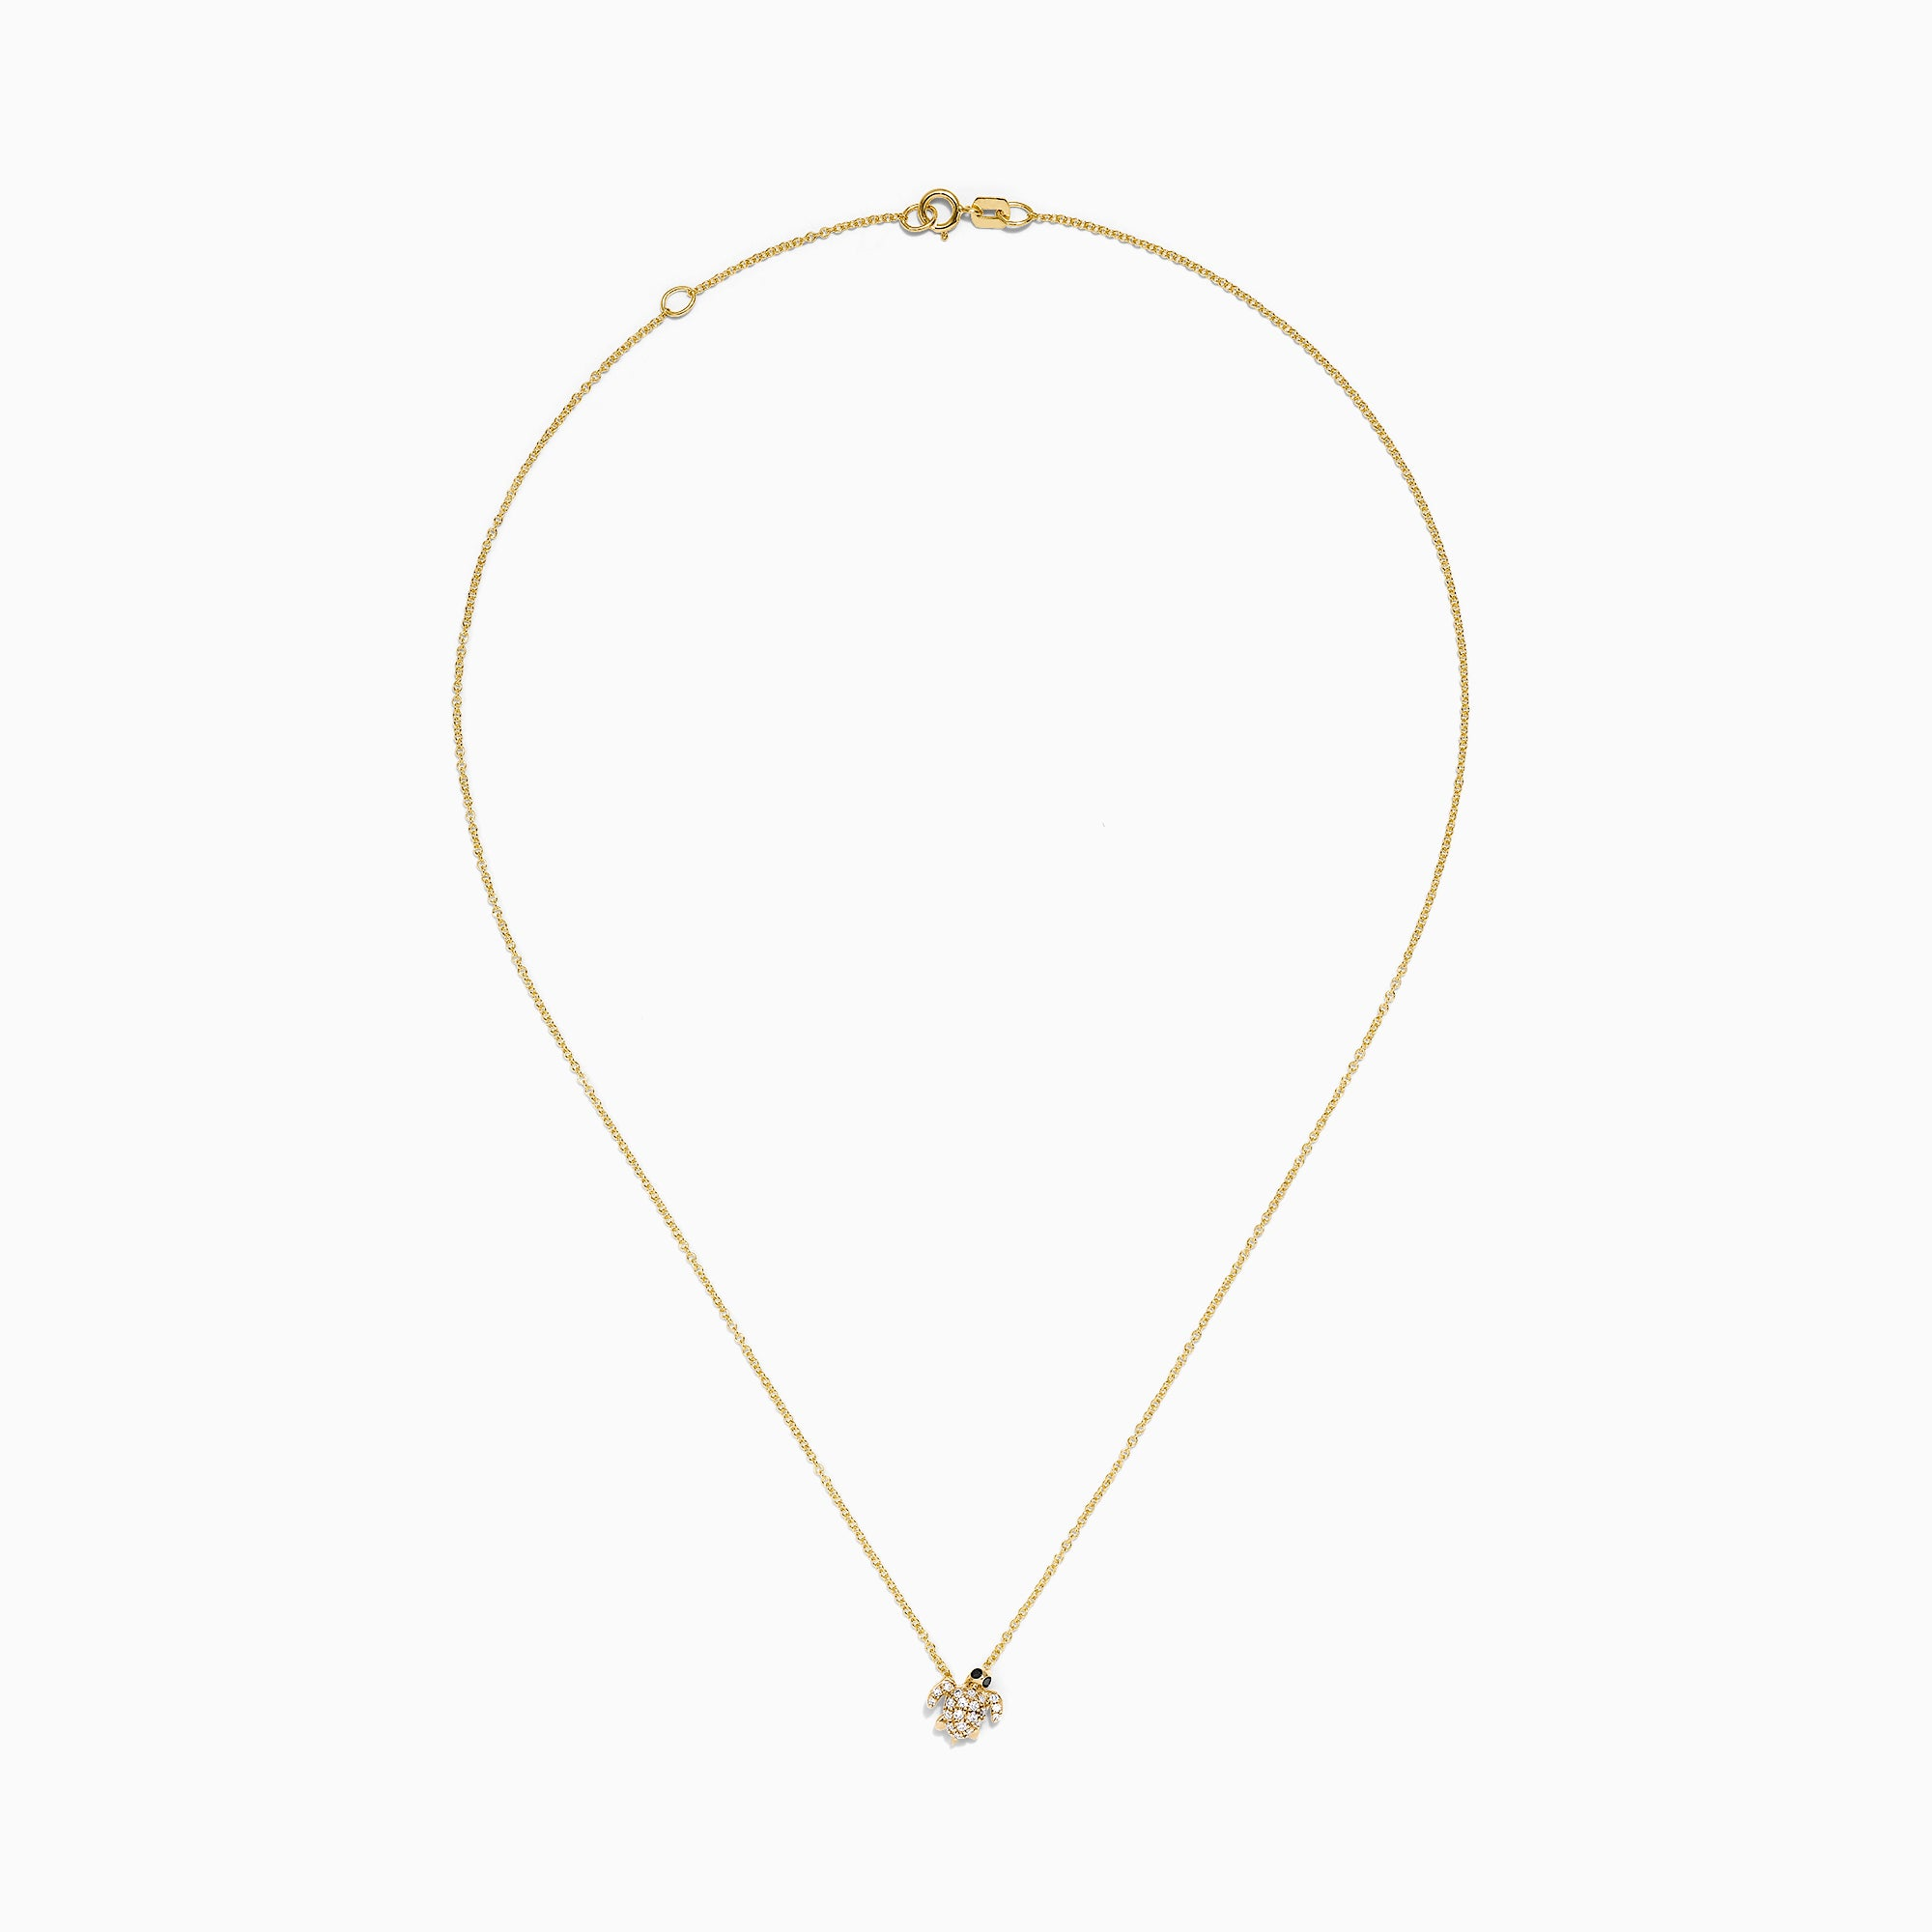 Effy Kidz 14K Yellow Gold Black and White Diamond Turtle Pendant, 0.10 TCW